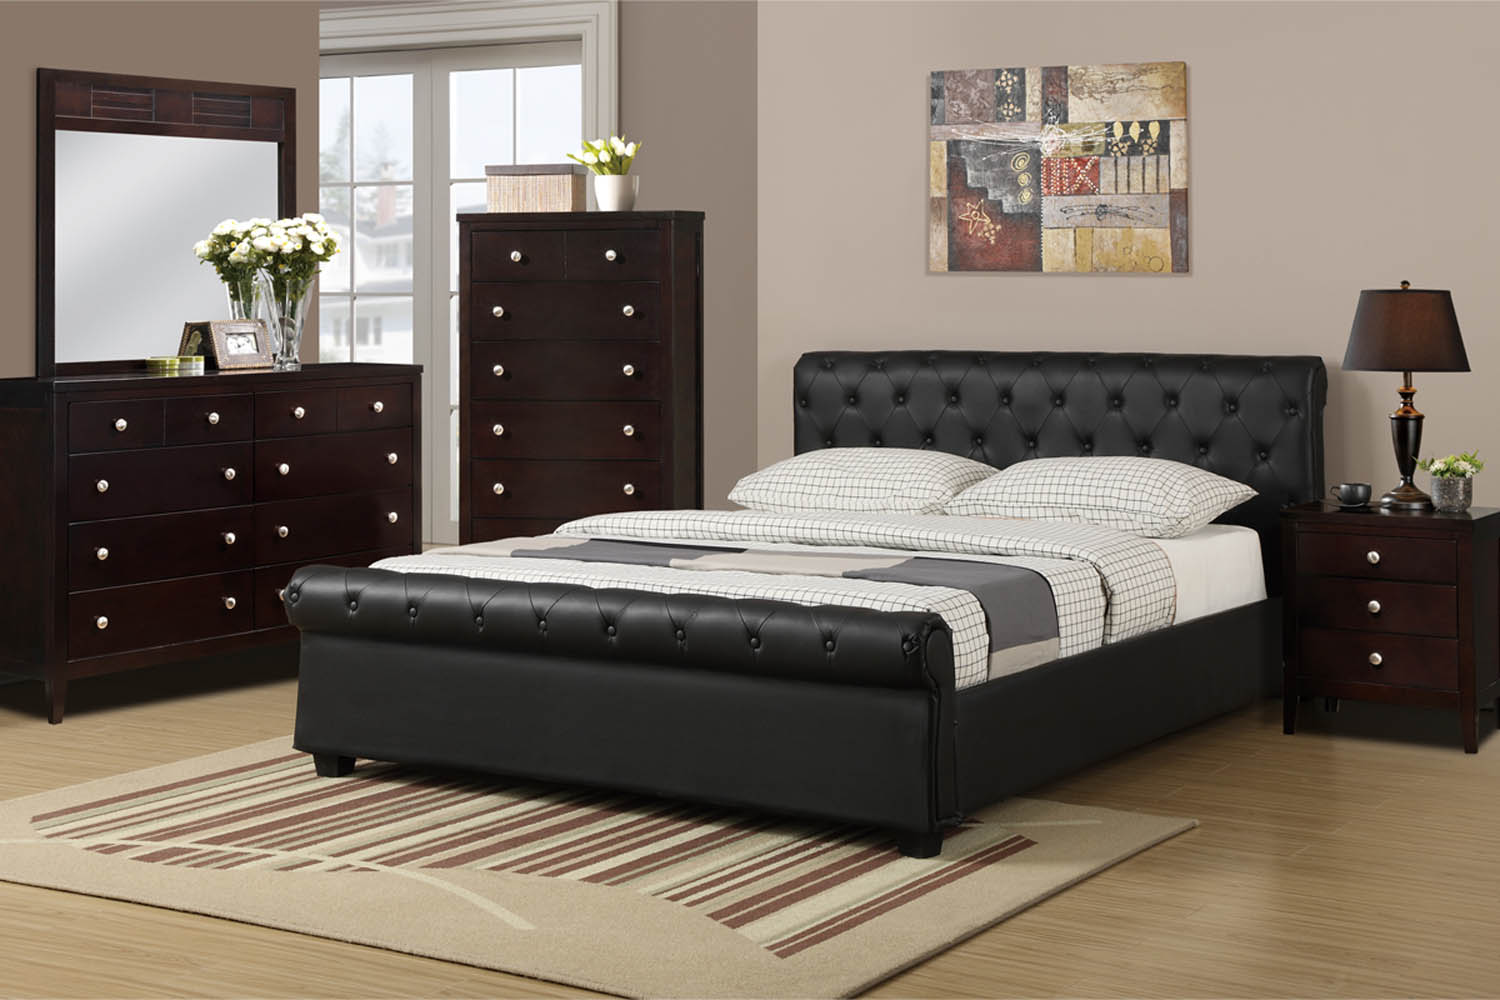 Leather Bed Tufted Faux Leather Bed Frame